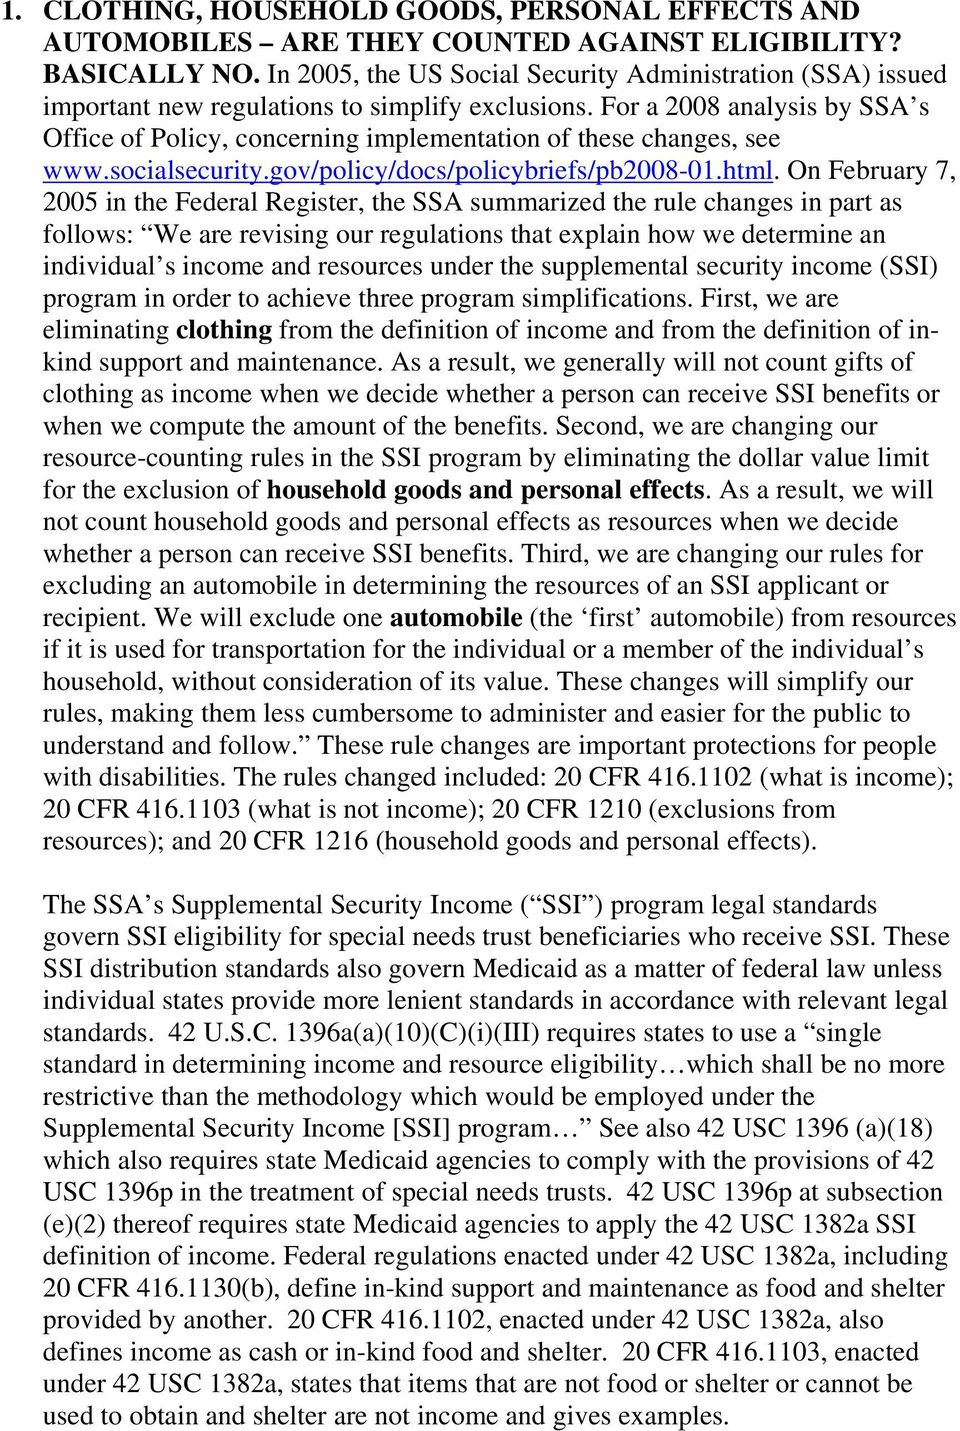 For a 2008 analysis by SSA s Office of Policy, concerning implementation of these changes, see www.socialsecurity.gov/policy/docs/policybriefs/pb2008-01.html.